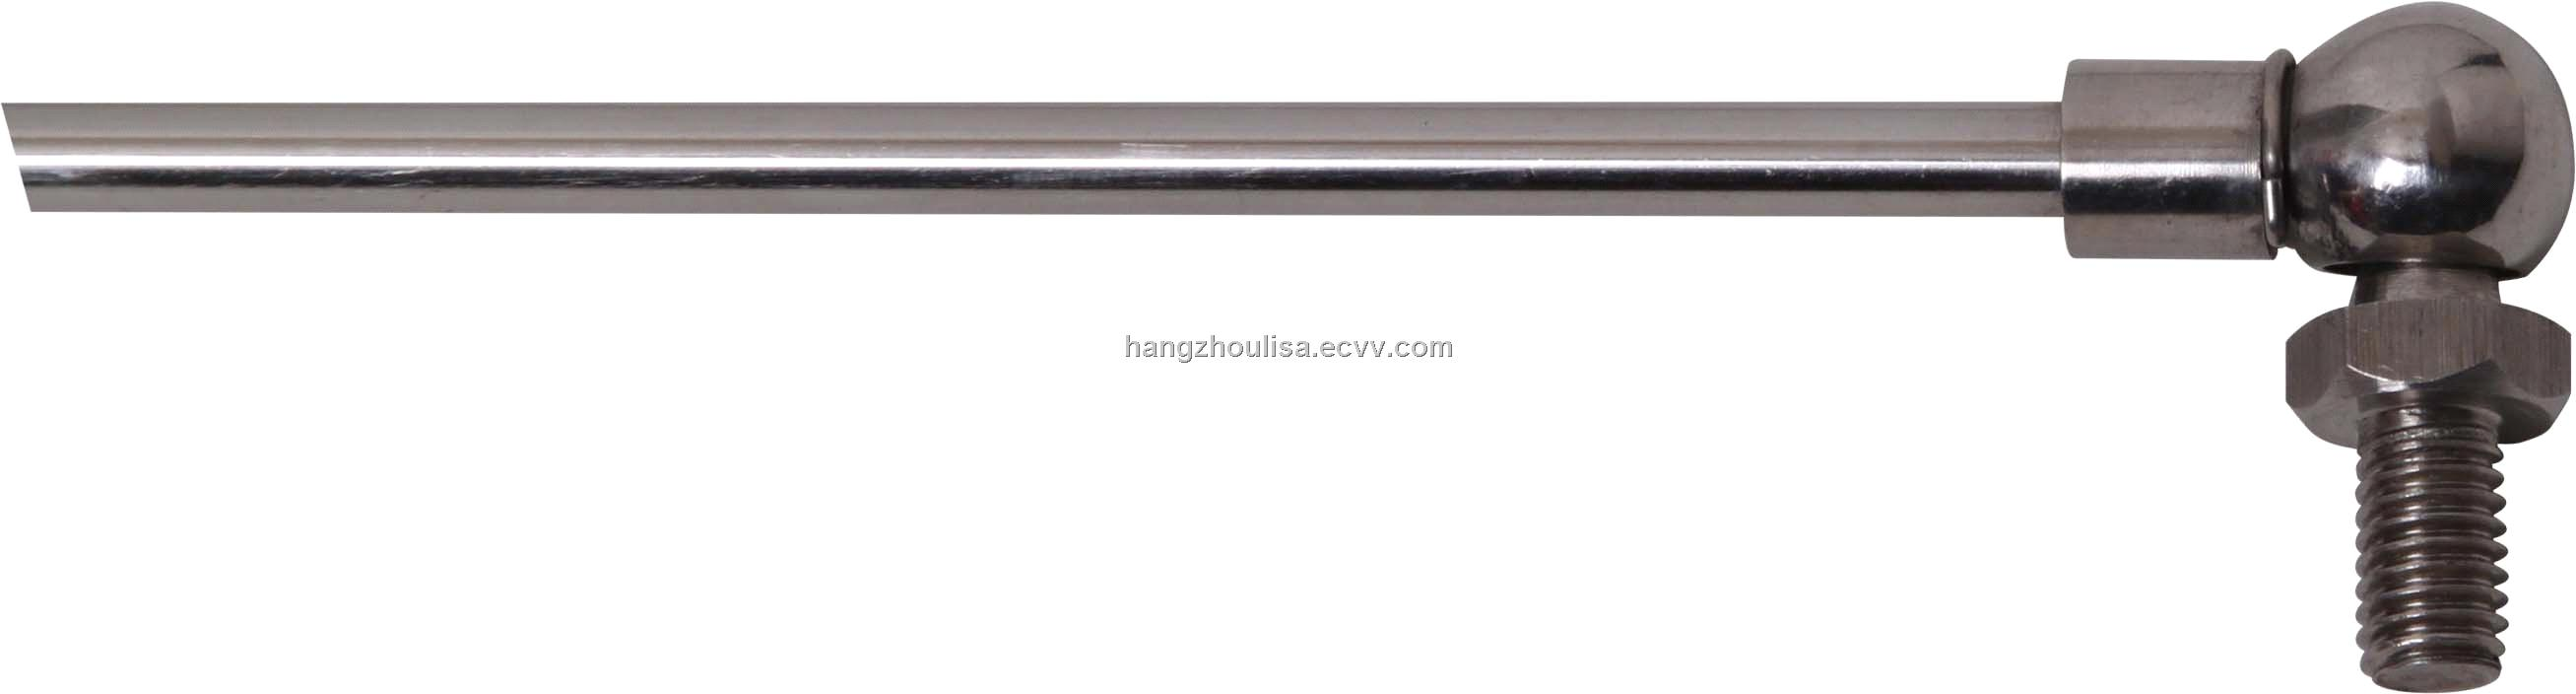 Stainless Steel Gas Spring Springs Strut Struts With End